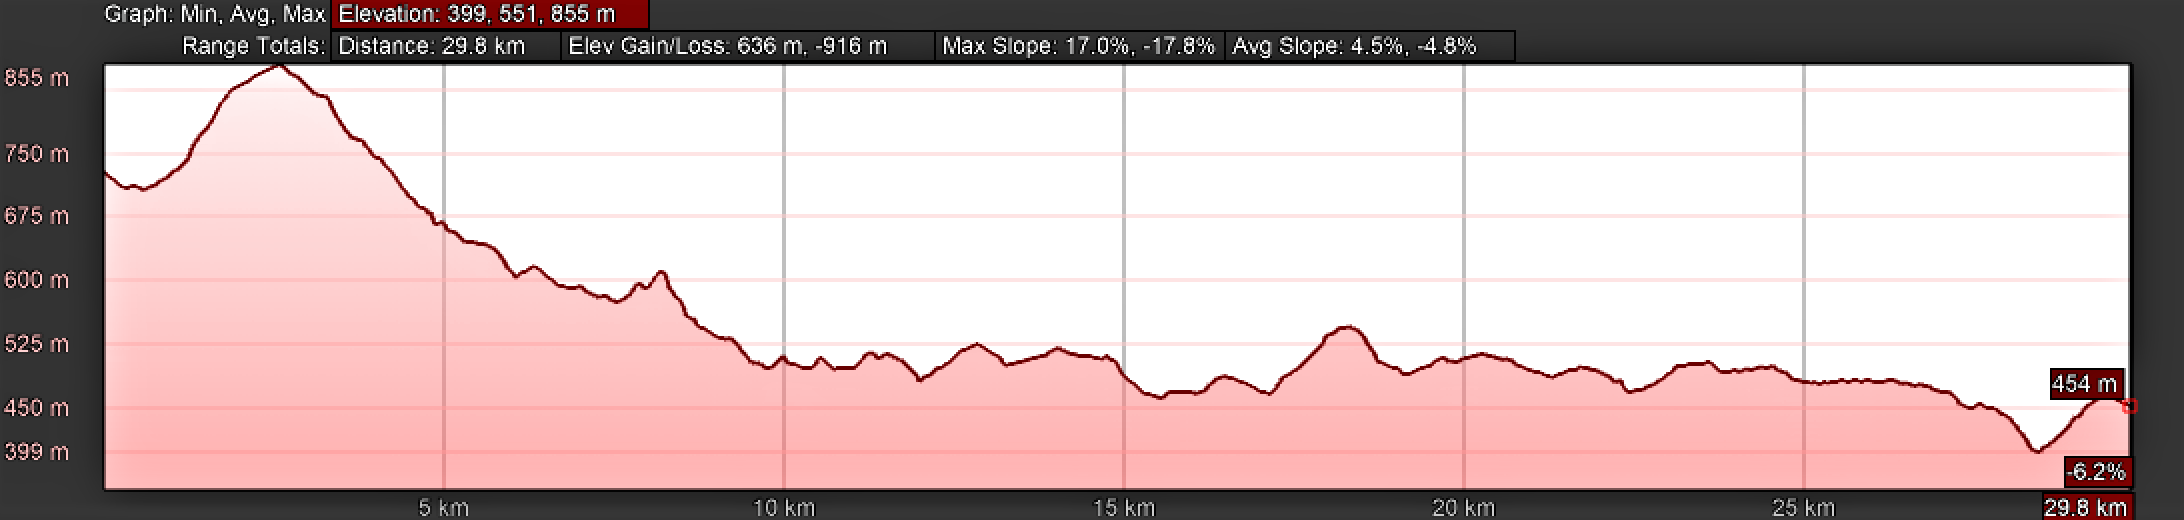 Elevation Profile O Cádavo to Lugo